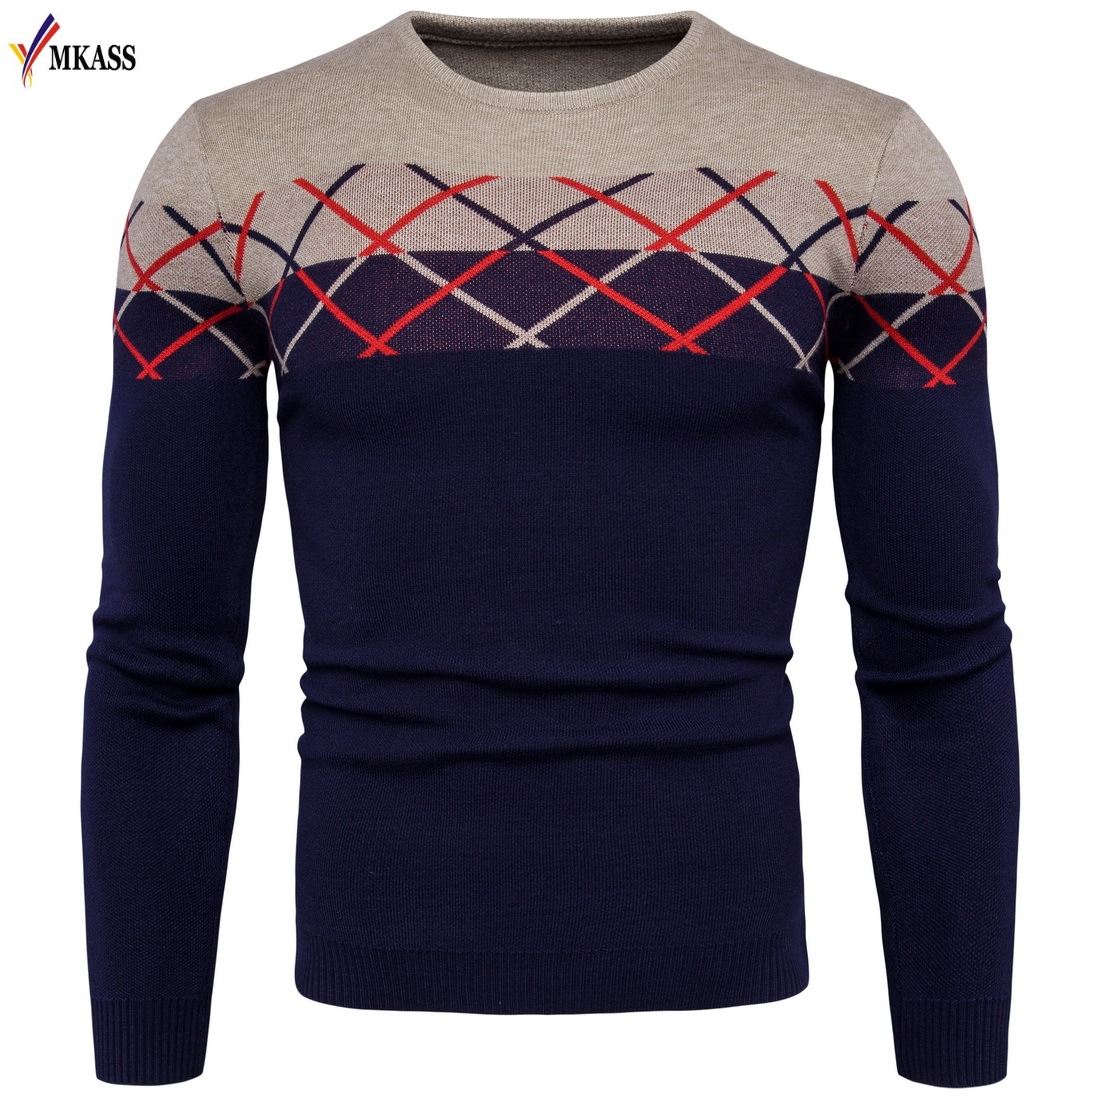 MKASS Brand New Fashion Clothing Men Knitted Sweater O-Neck Slim Fit Pullover Men Striped Sweaters For Men M-2XL